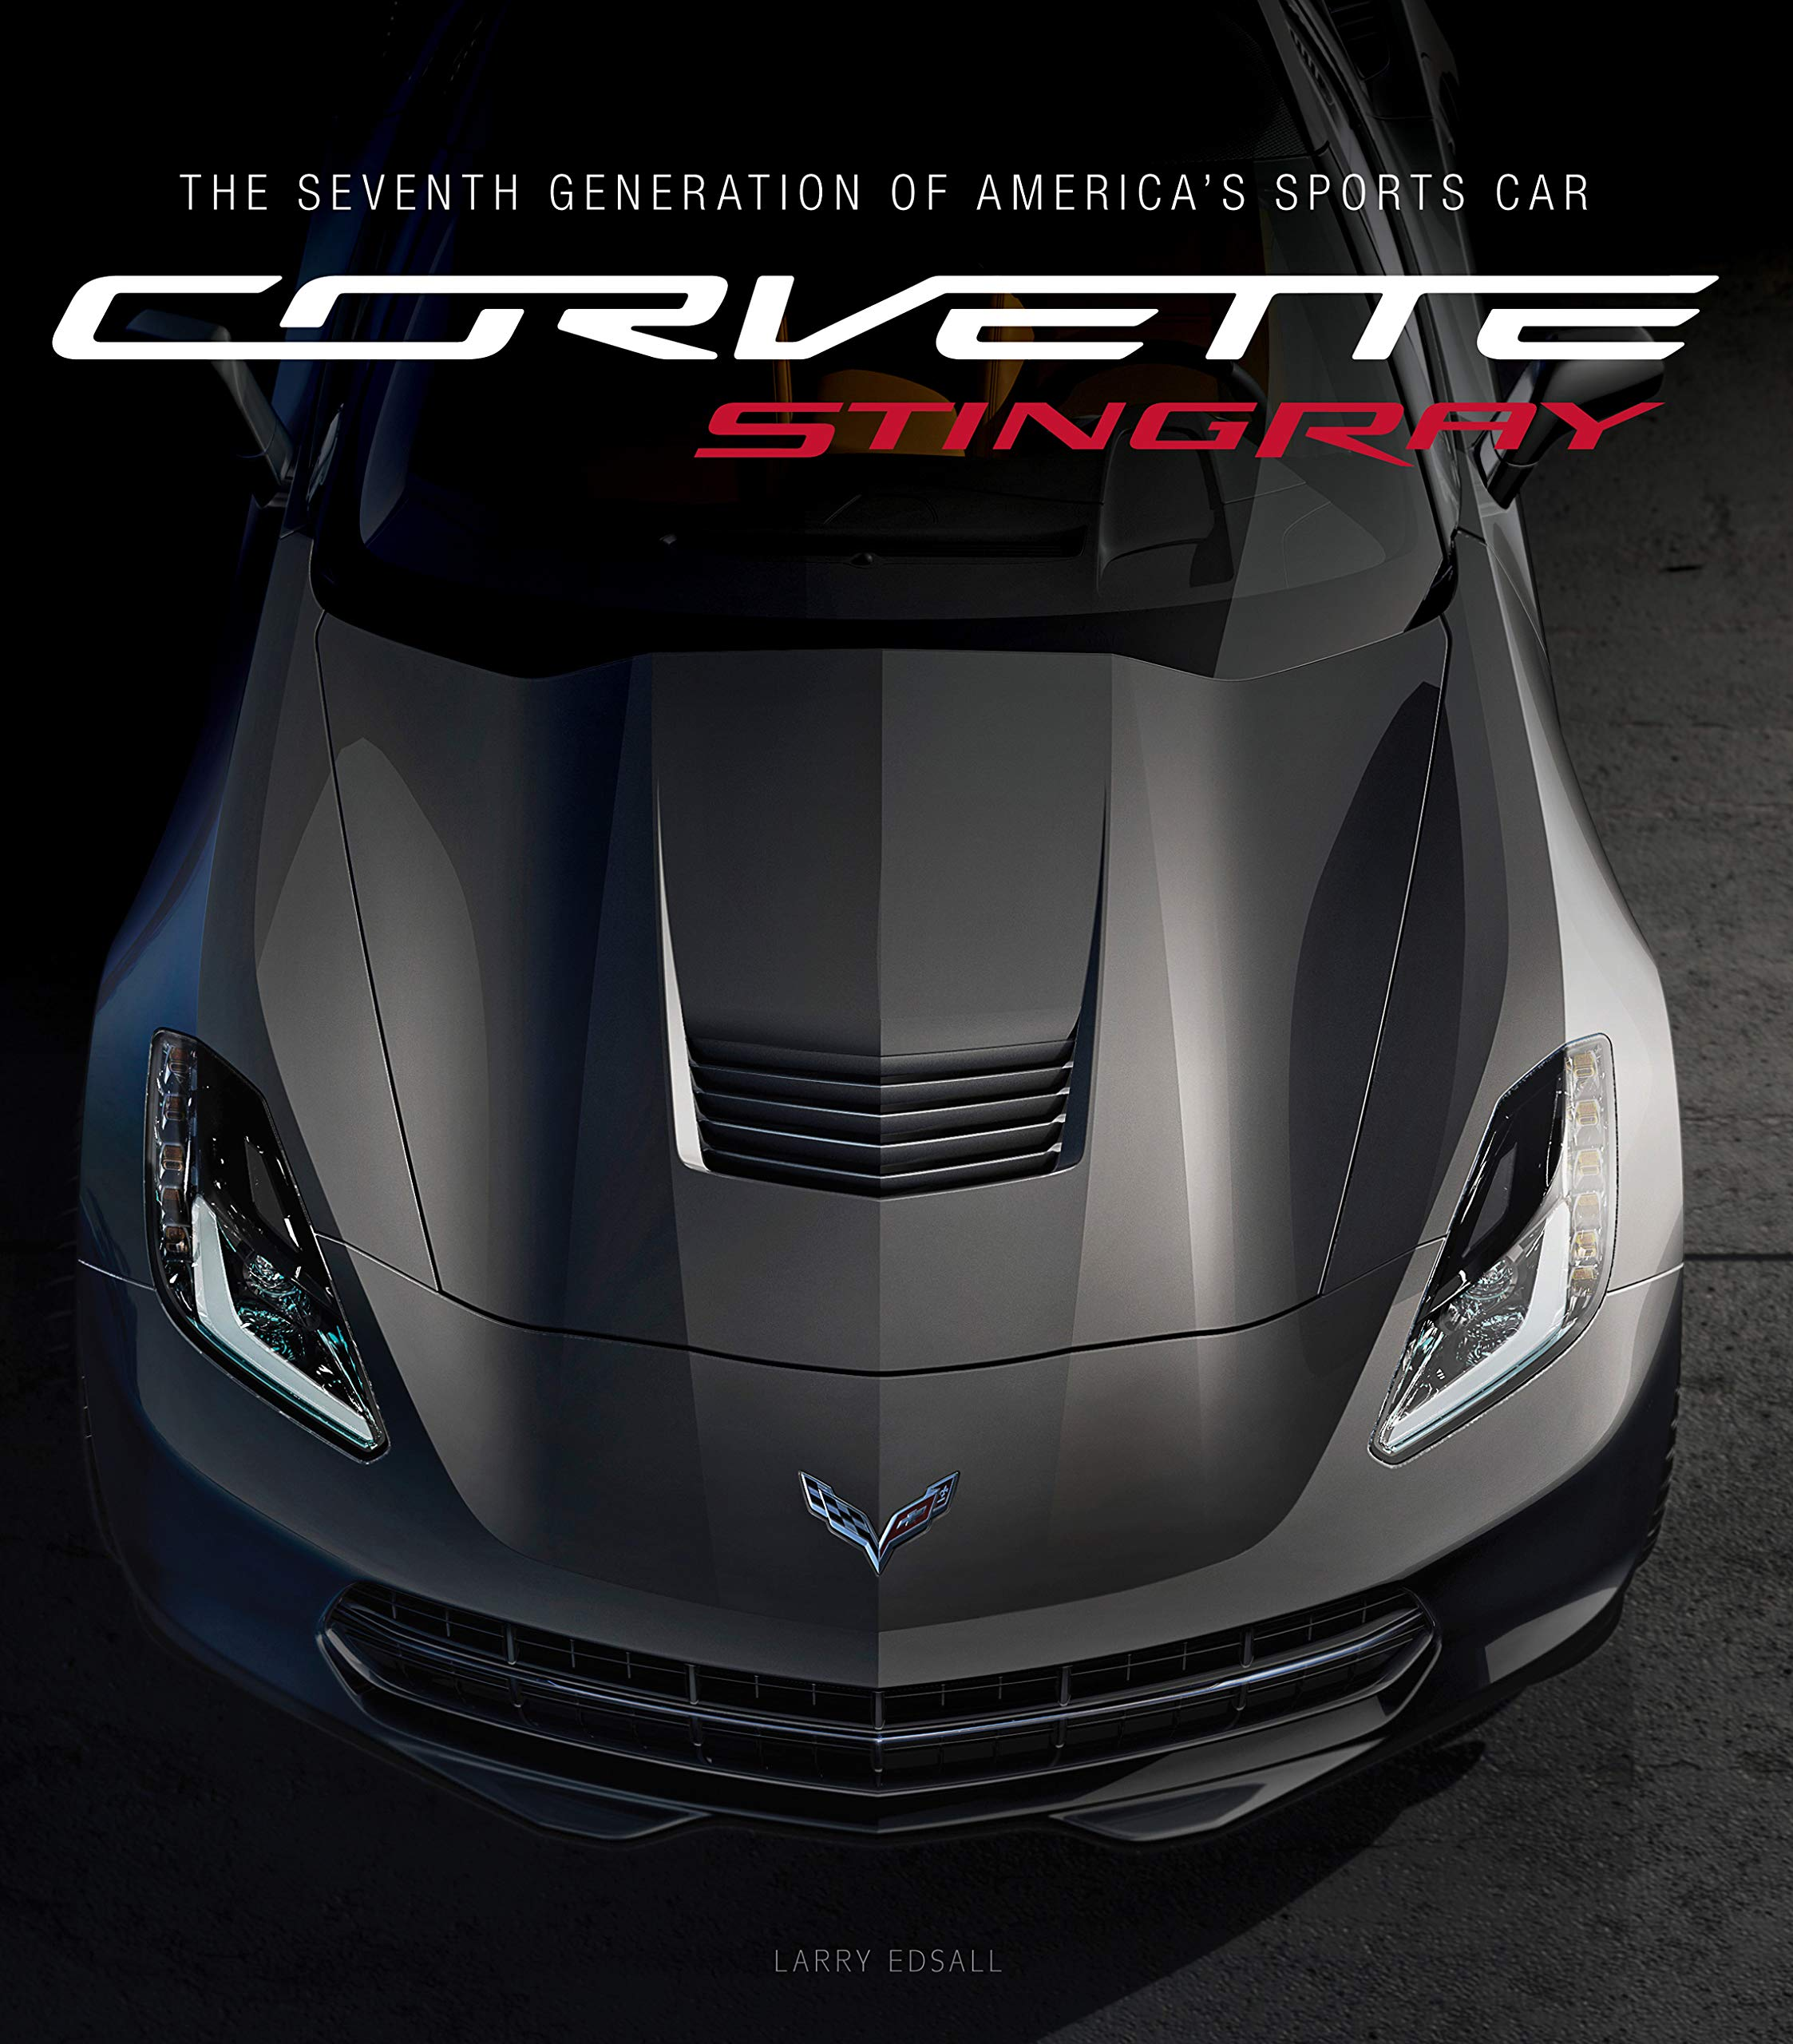 Image OfCorvette Stingray: The Seventh Generation Of America's Sports Car